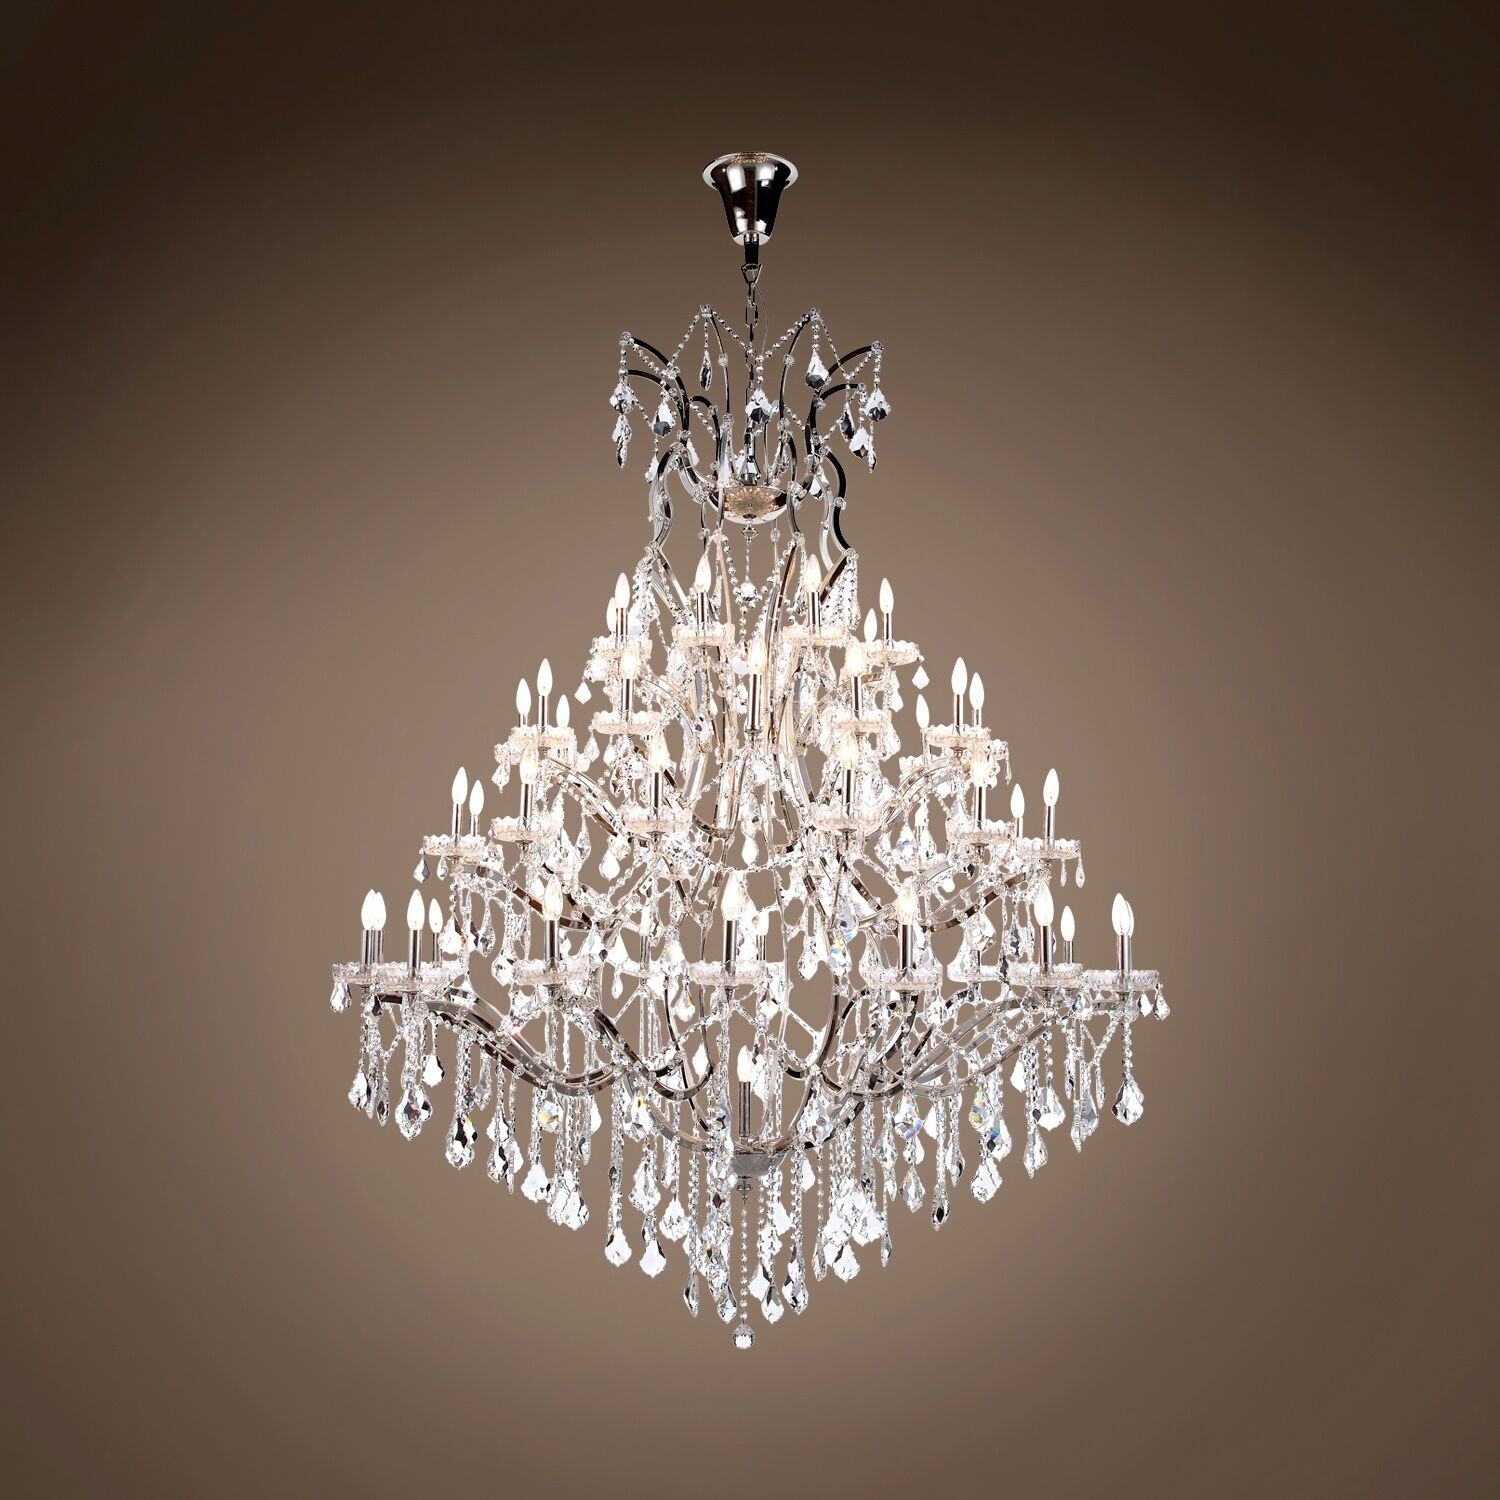 Chantrell 49-Light Chandelier Crystal Color: Clear, Finish: Polished Nickel